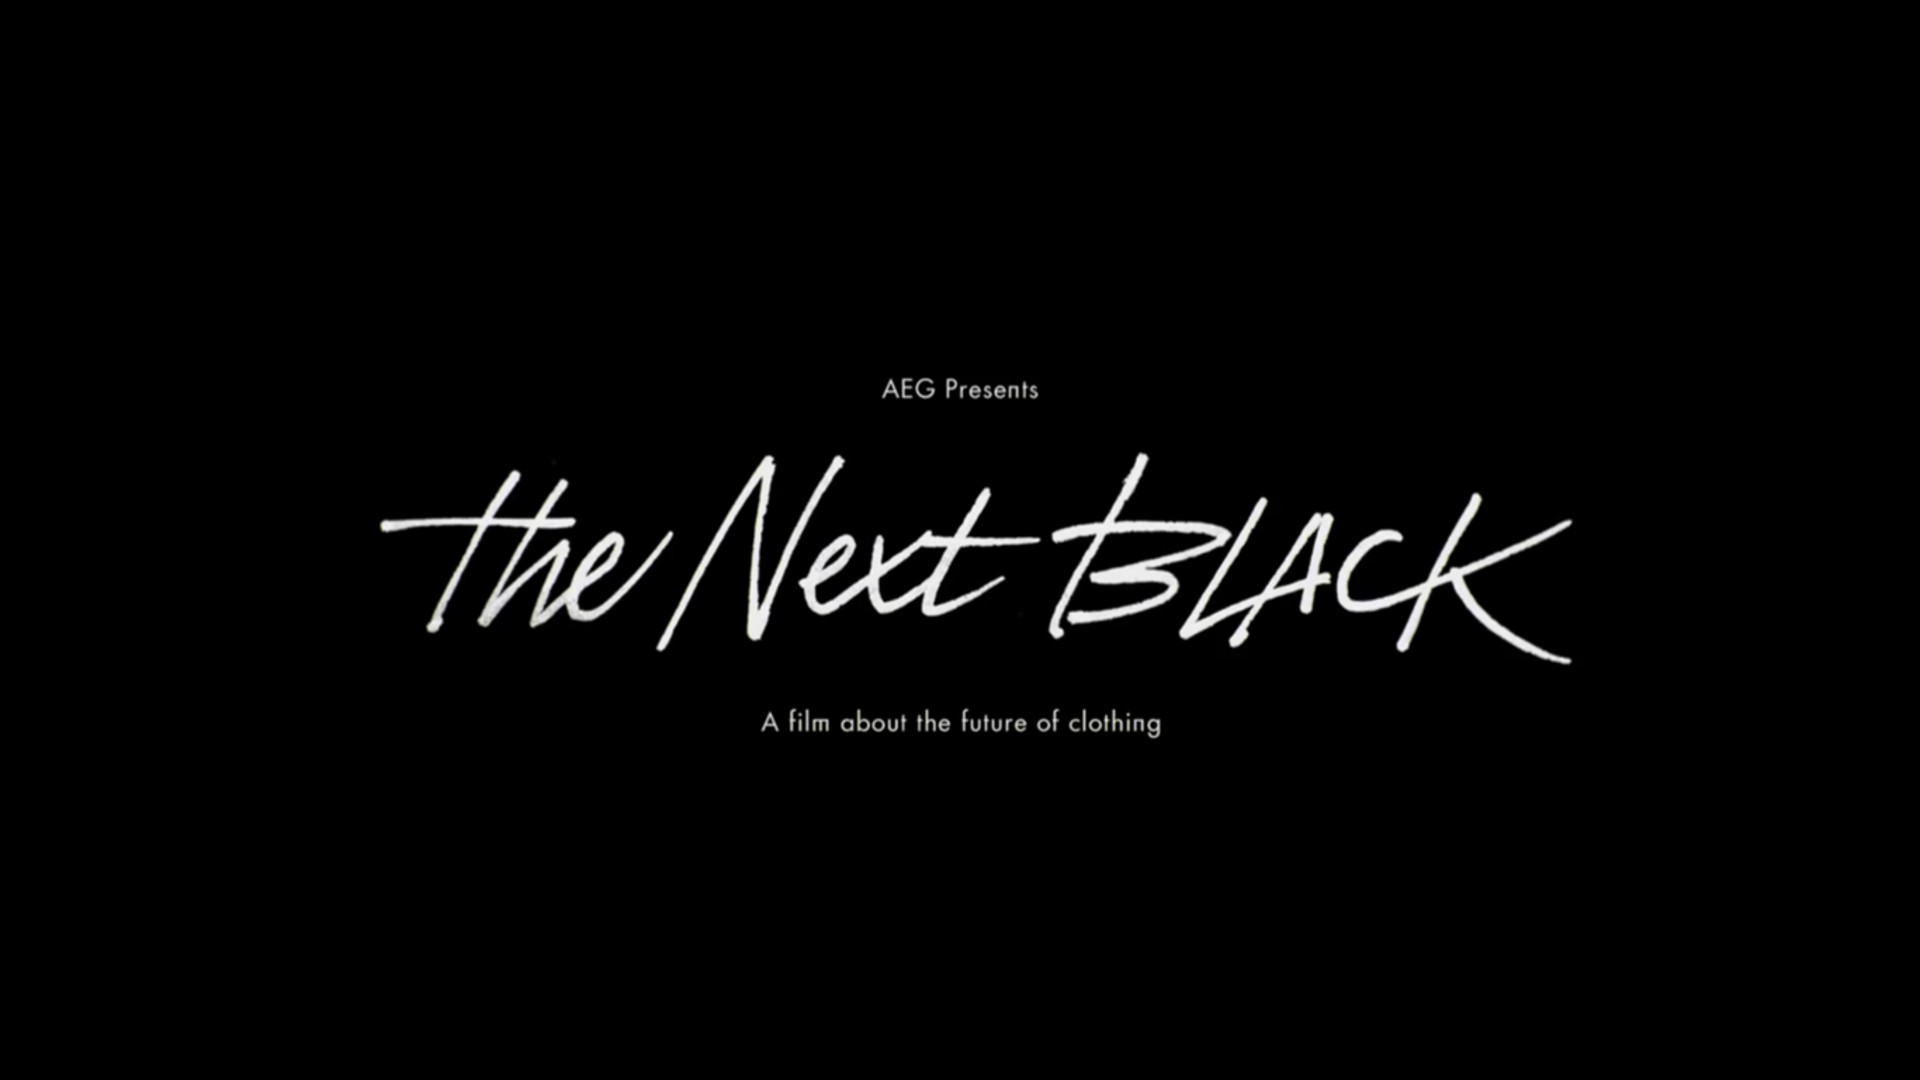 Watch Full Movie - The Next Black